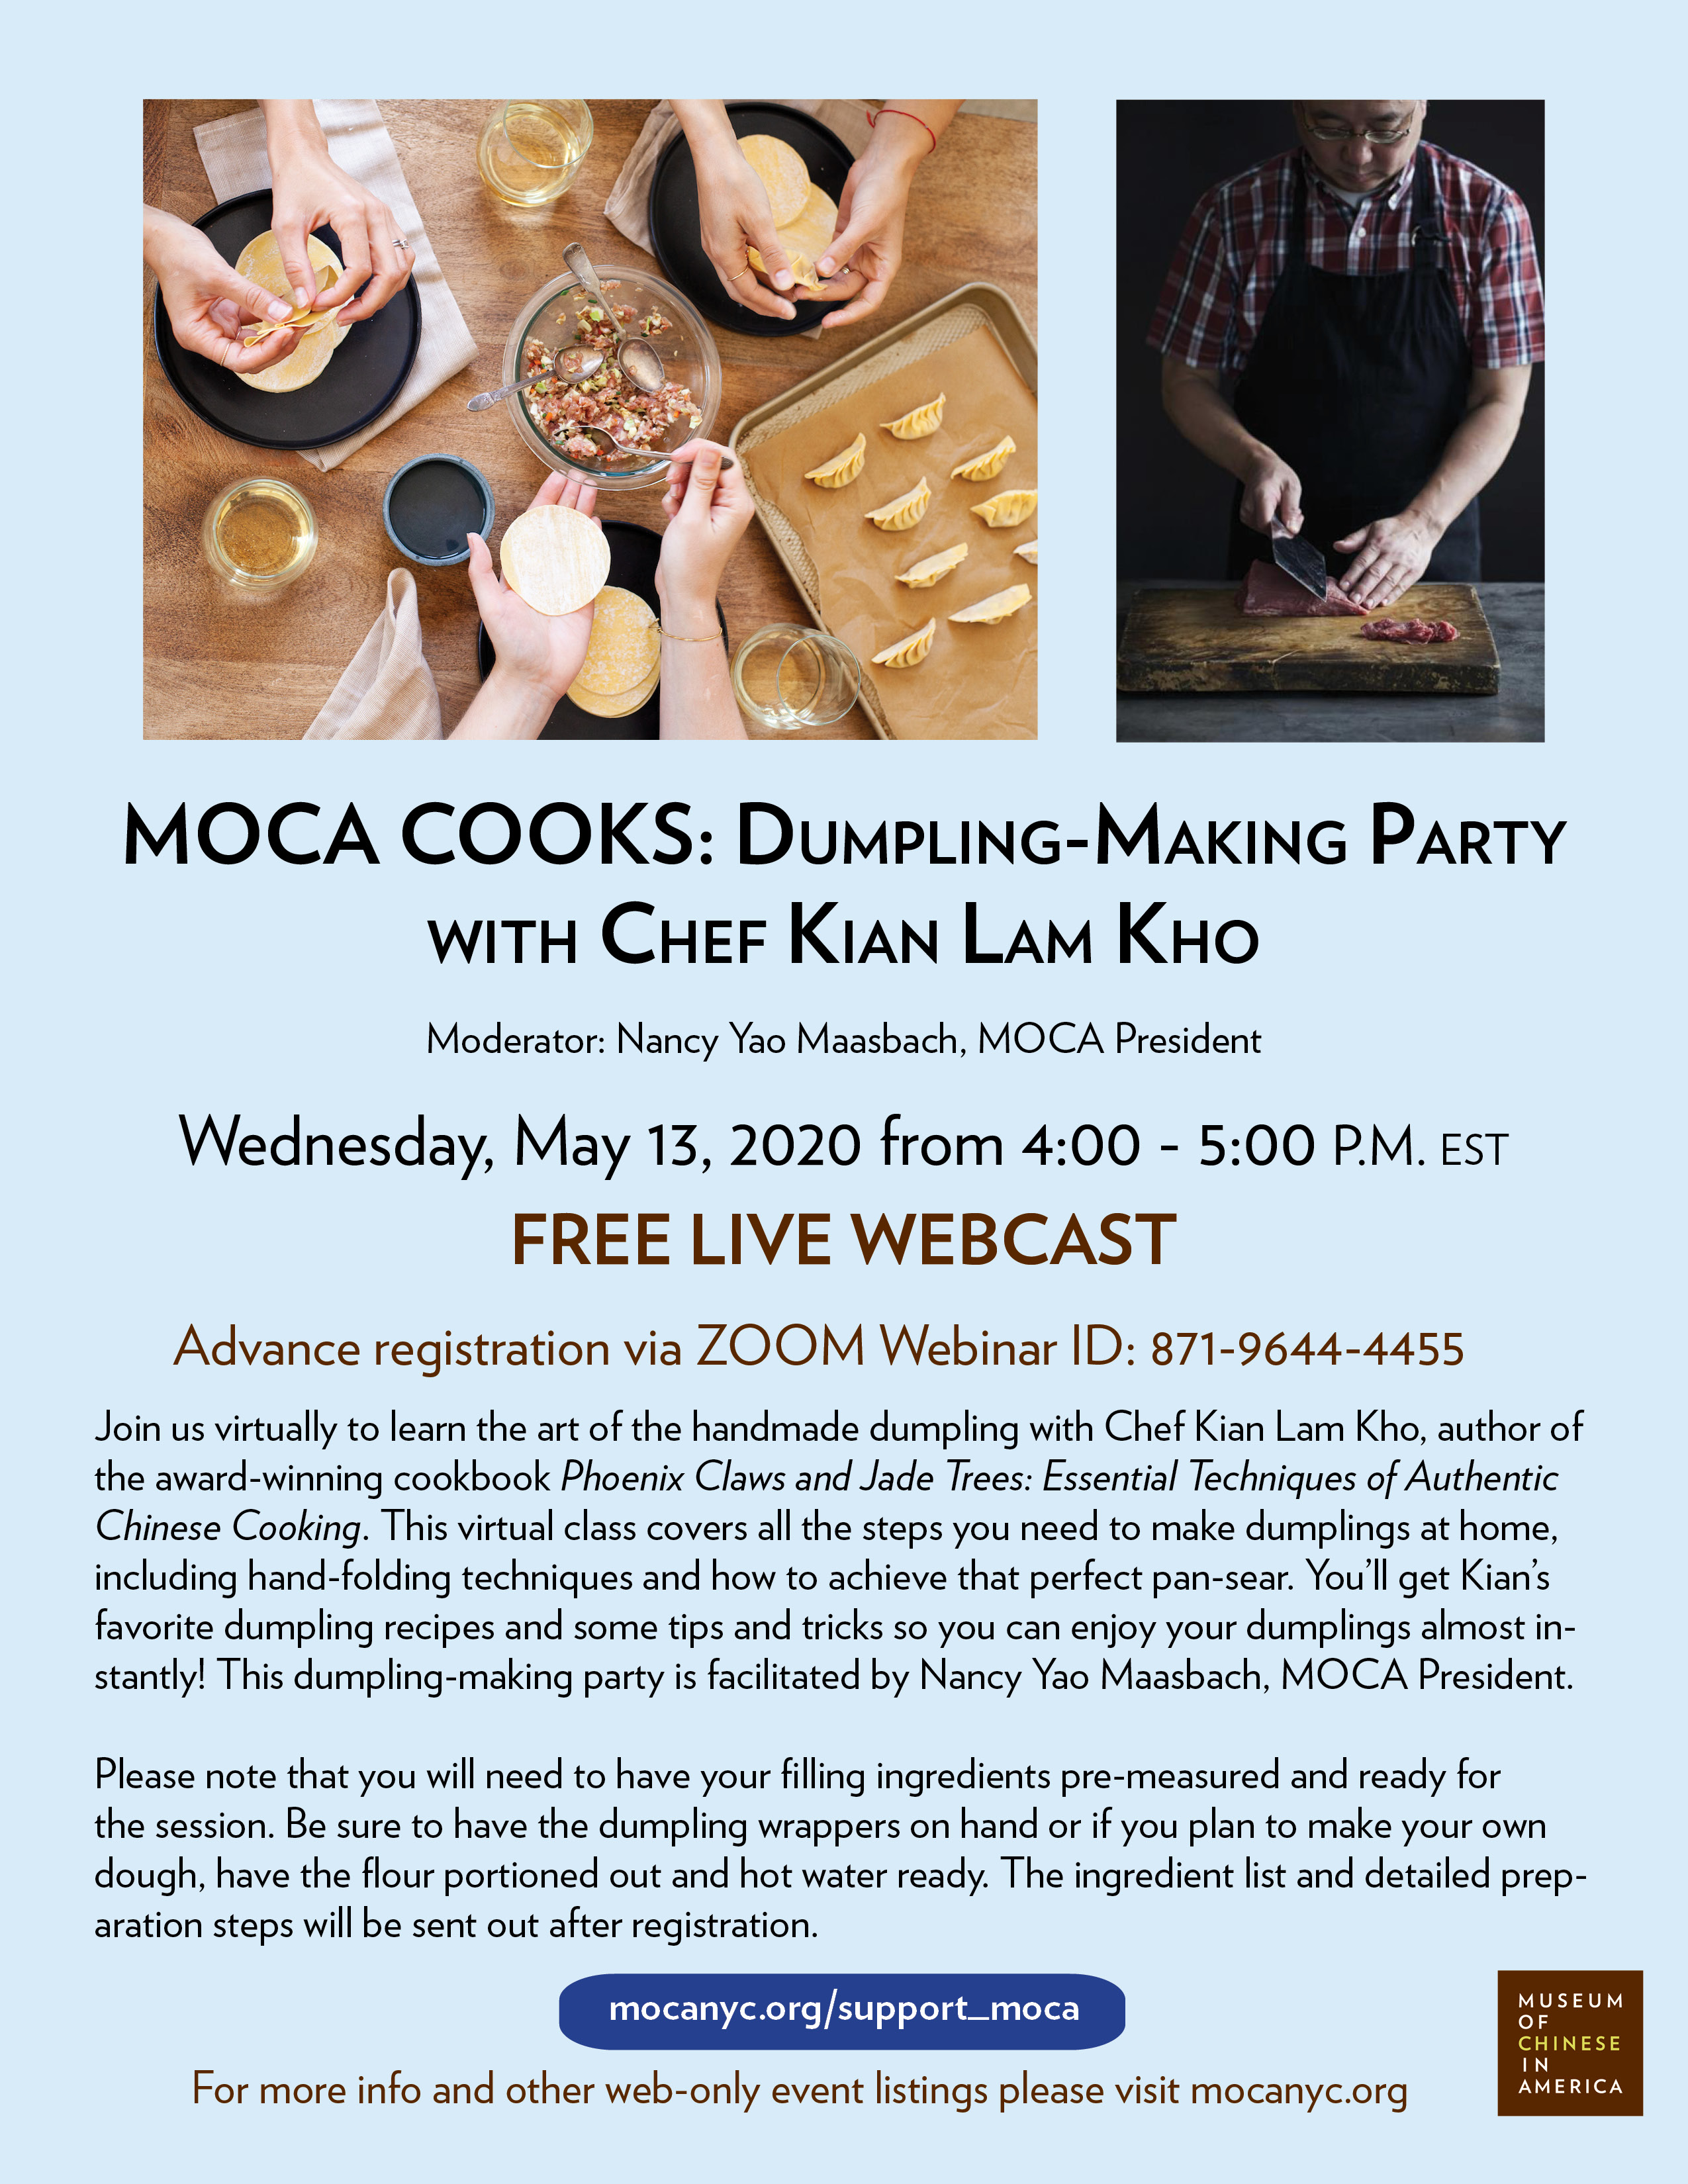 [LIVE STREAM] MOCA COOKS: Dumpling-Making Party with Chef Kian Lam Kho